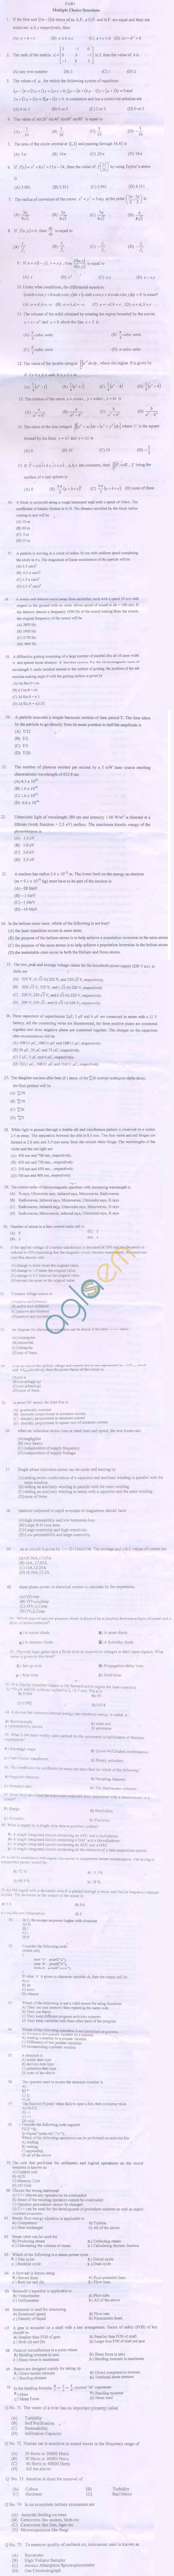 PU LEET 2011 Question Papers with Answers